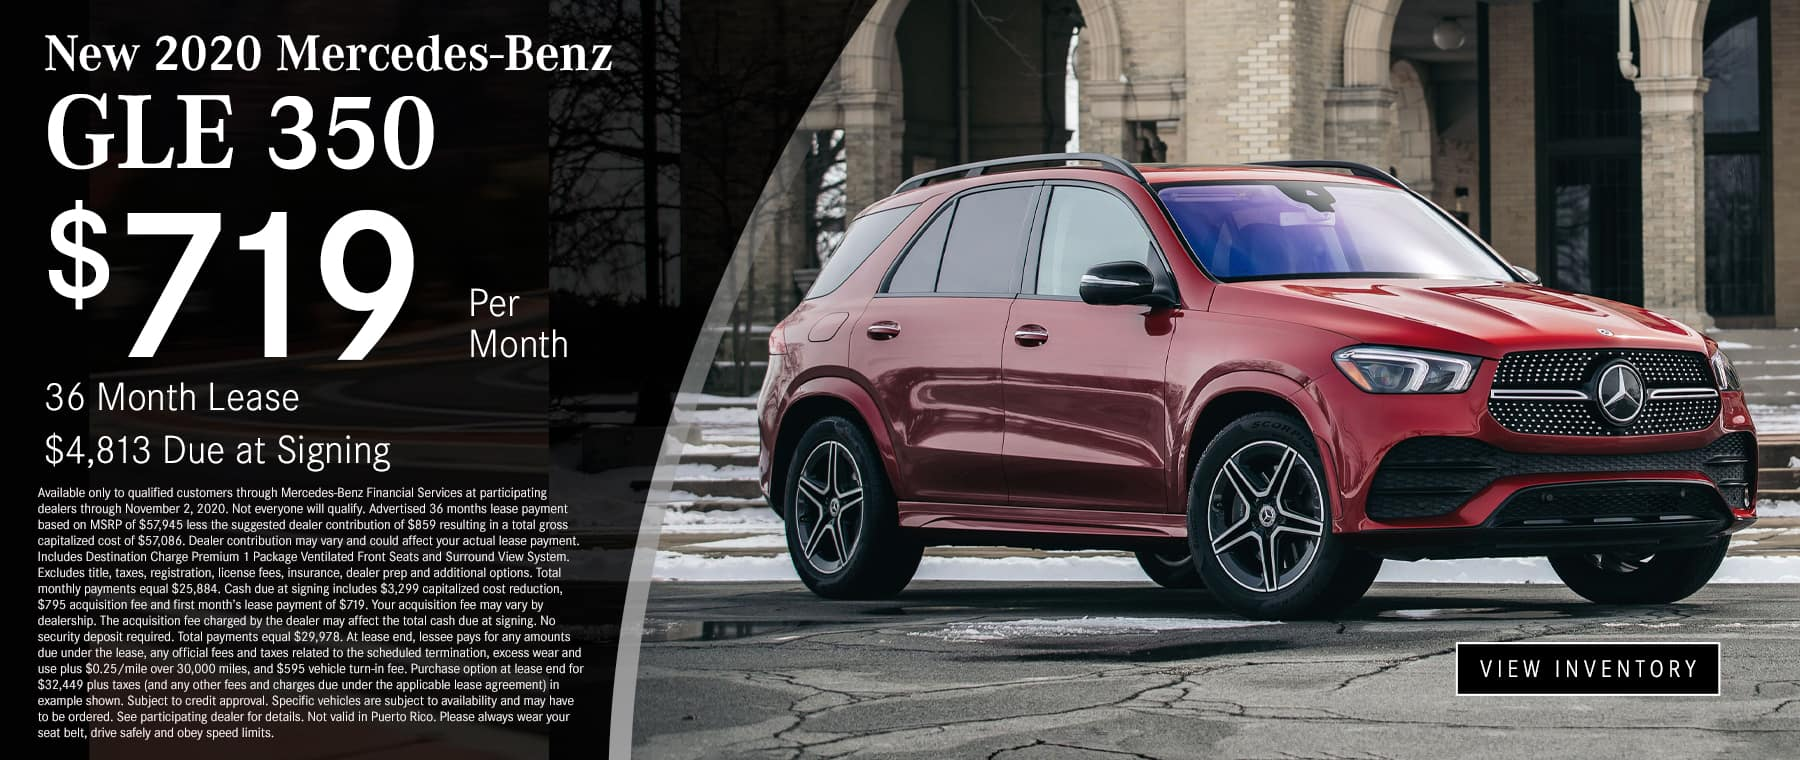 gle special